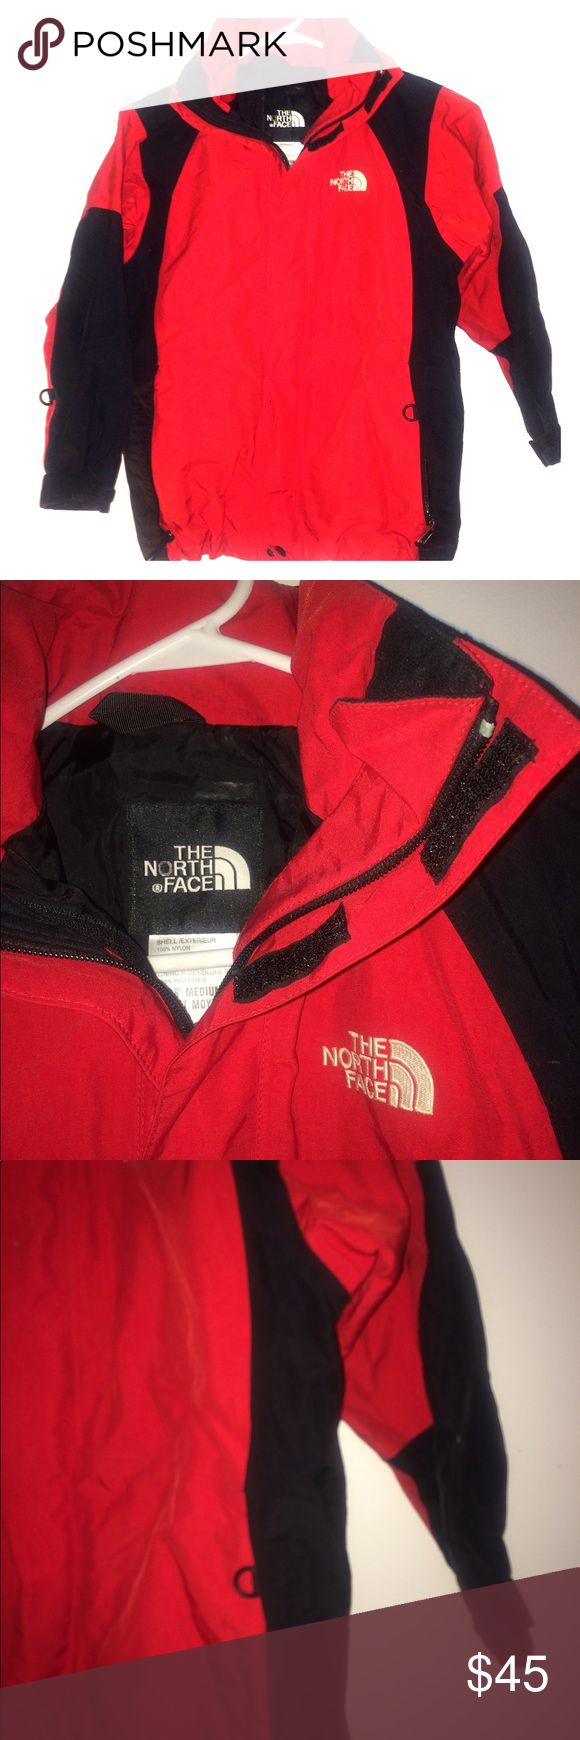 The Northface Kids Cadet Moyens jacket 100%Auth. , no holes,no stains, good condition, zipper at front , hood attached, inside pocket ,embroidery in front & back , Shell: 100%nylon The North Face Jackets & Coats